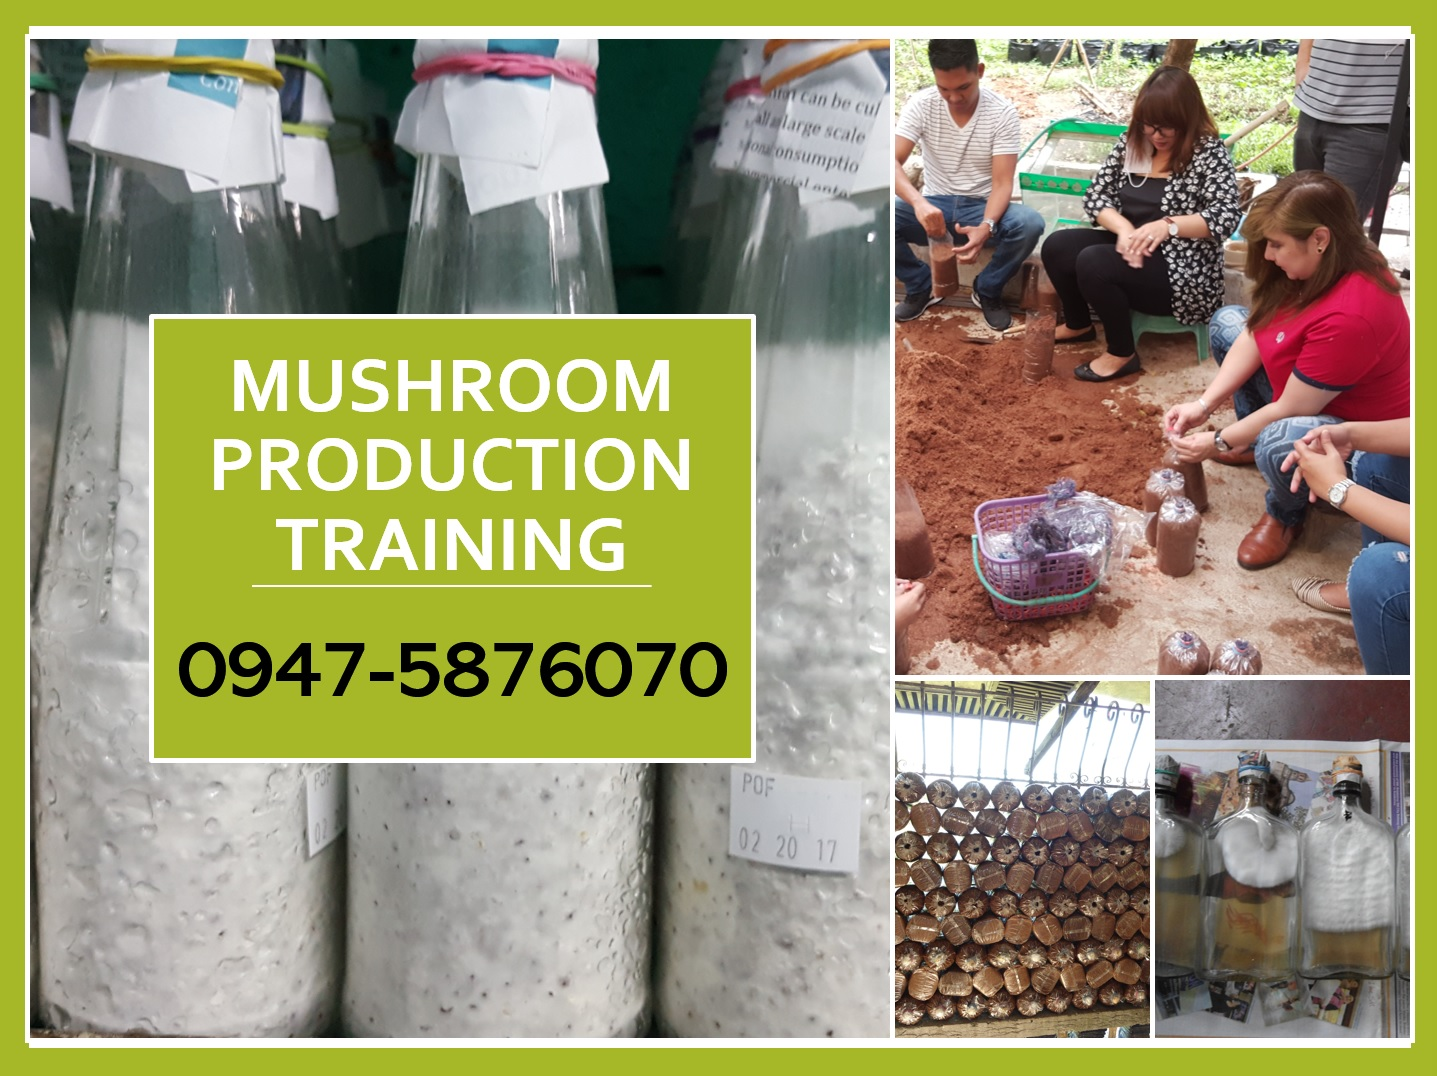 JMP Mushroom: Mushroom Production and Growing Seminar